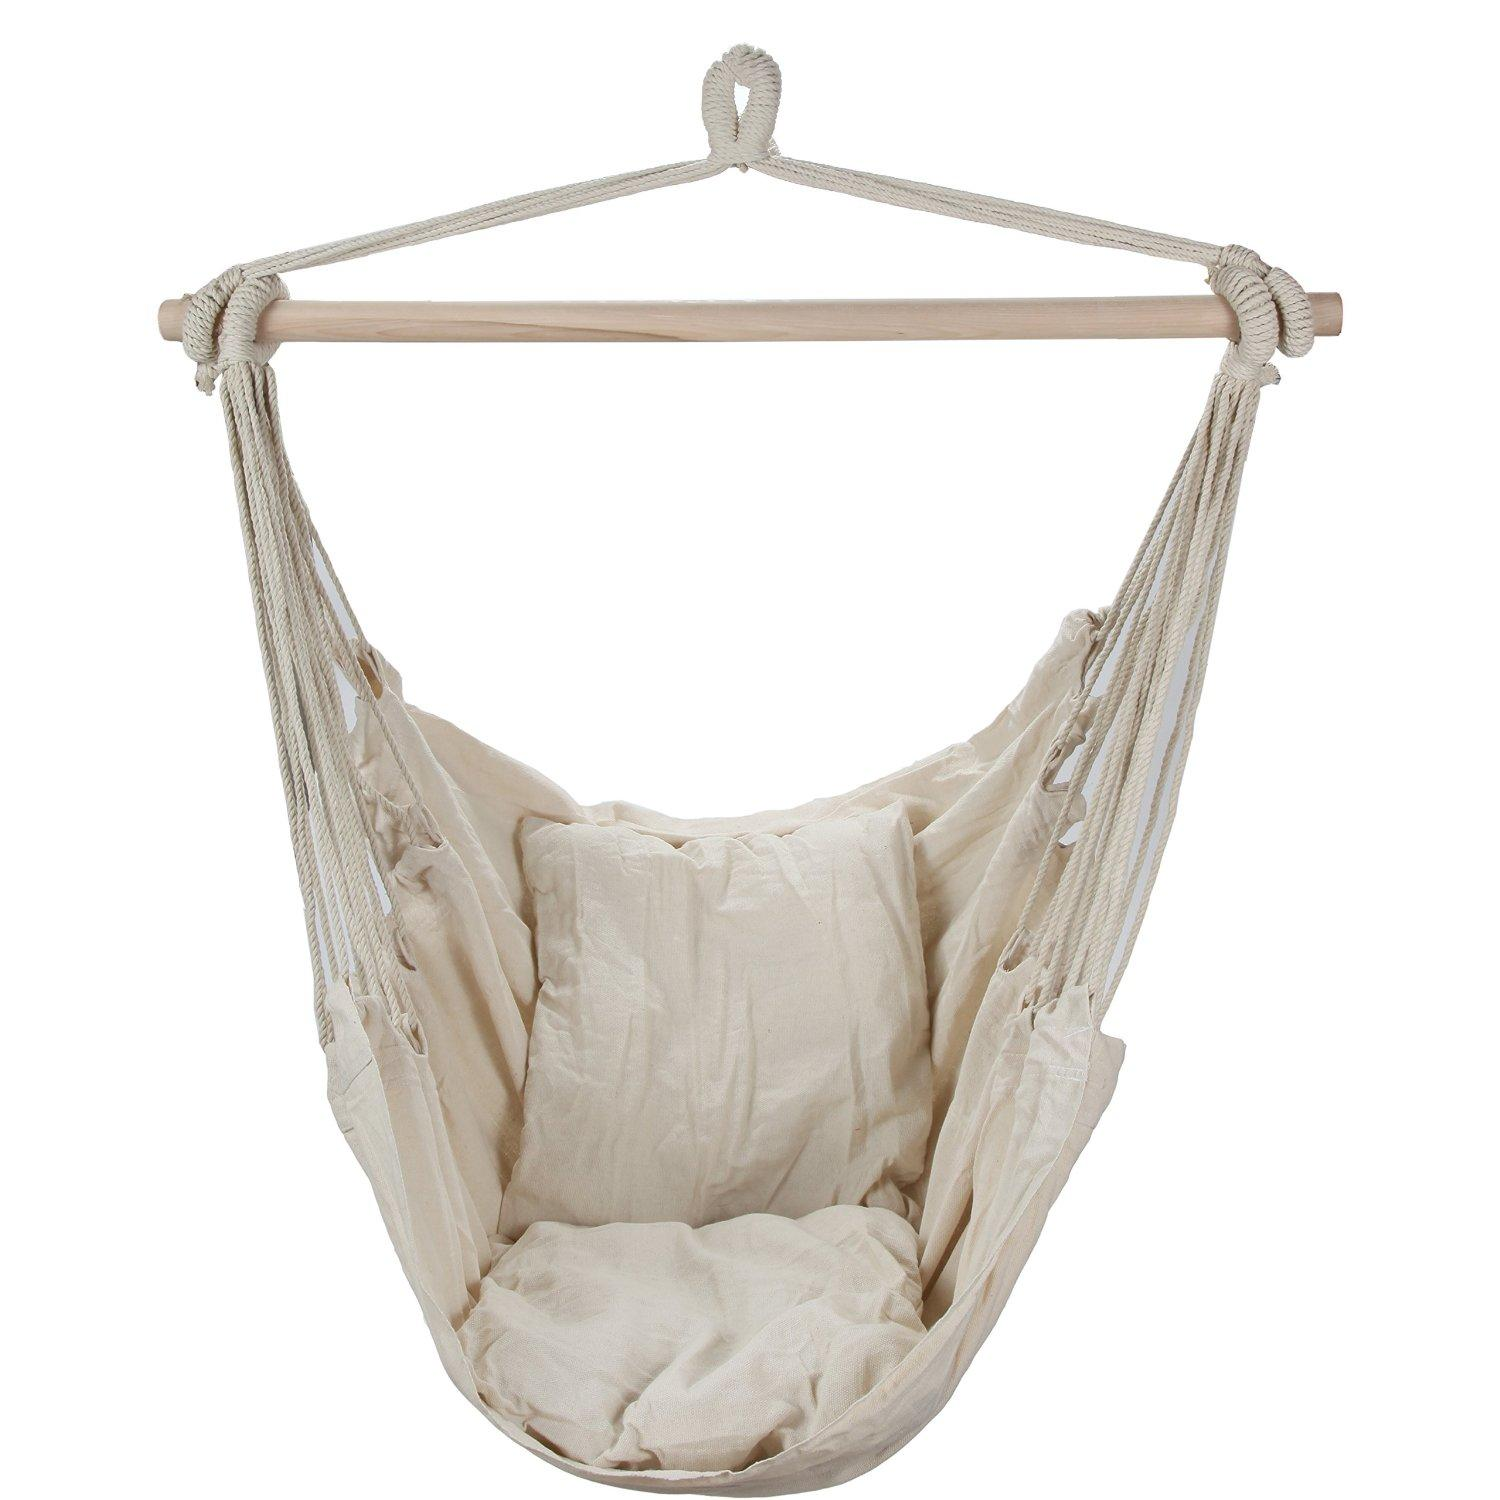 hammock chair amazon covers decoration ideas swing hanging with two from bed